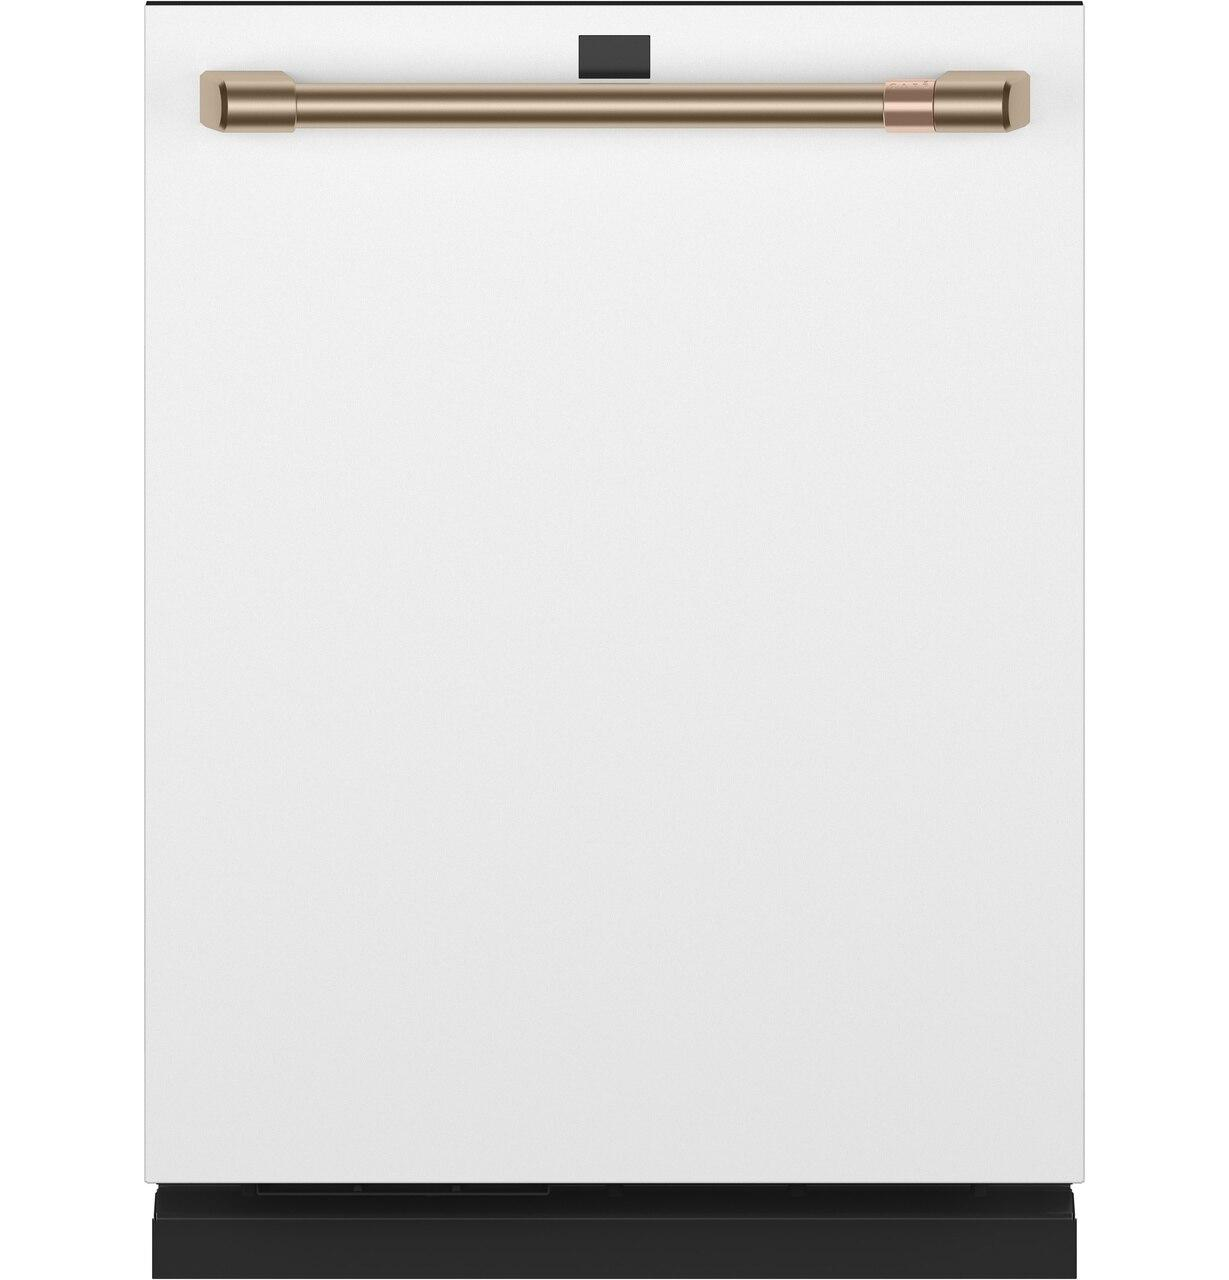 CafeSmart Stainless Steel Interior Dishwasher With Sanitize And Ultra Wash & Dual Convection Ultra Dry